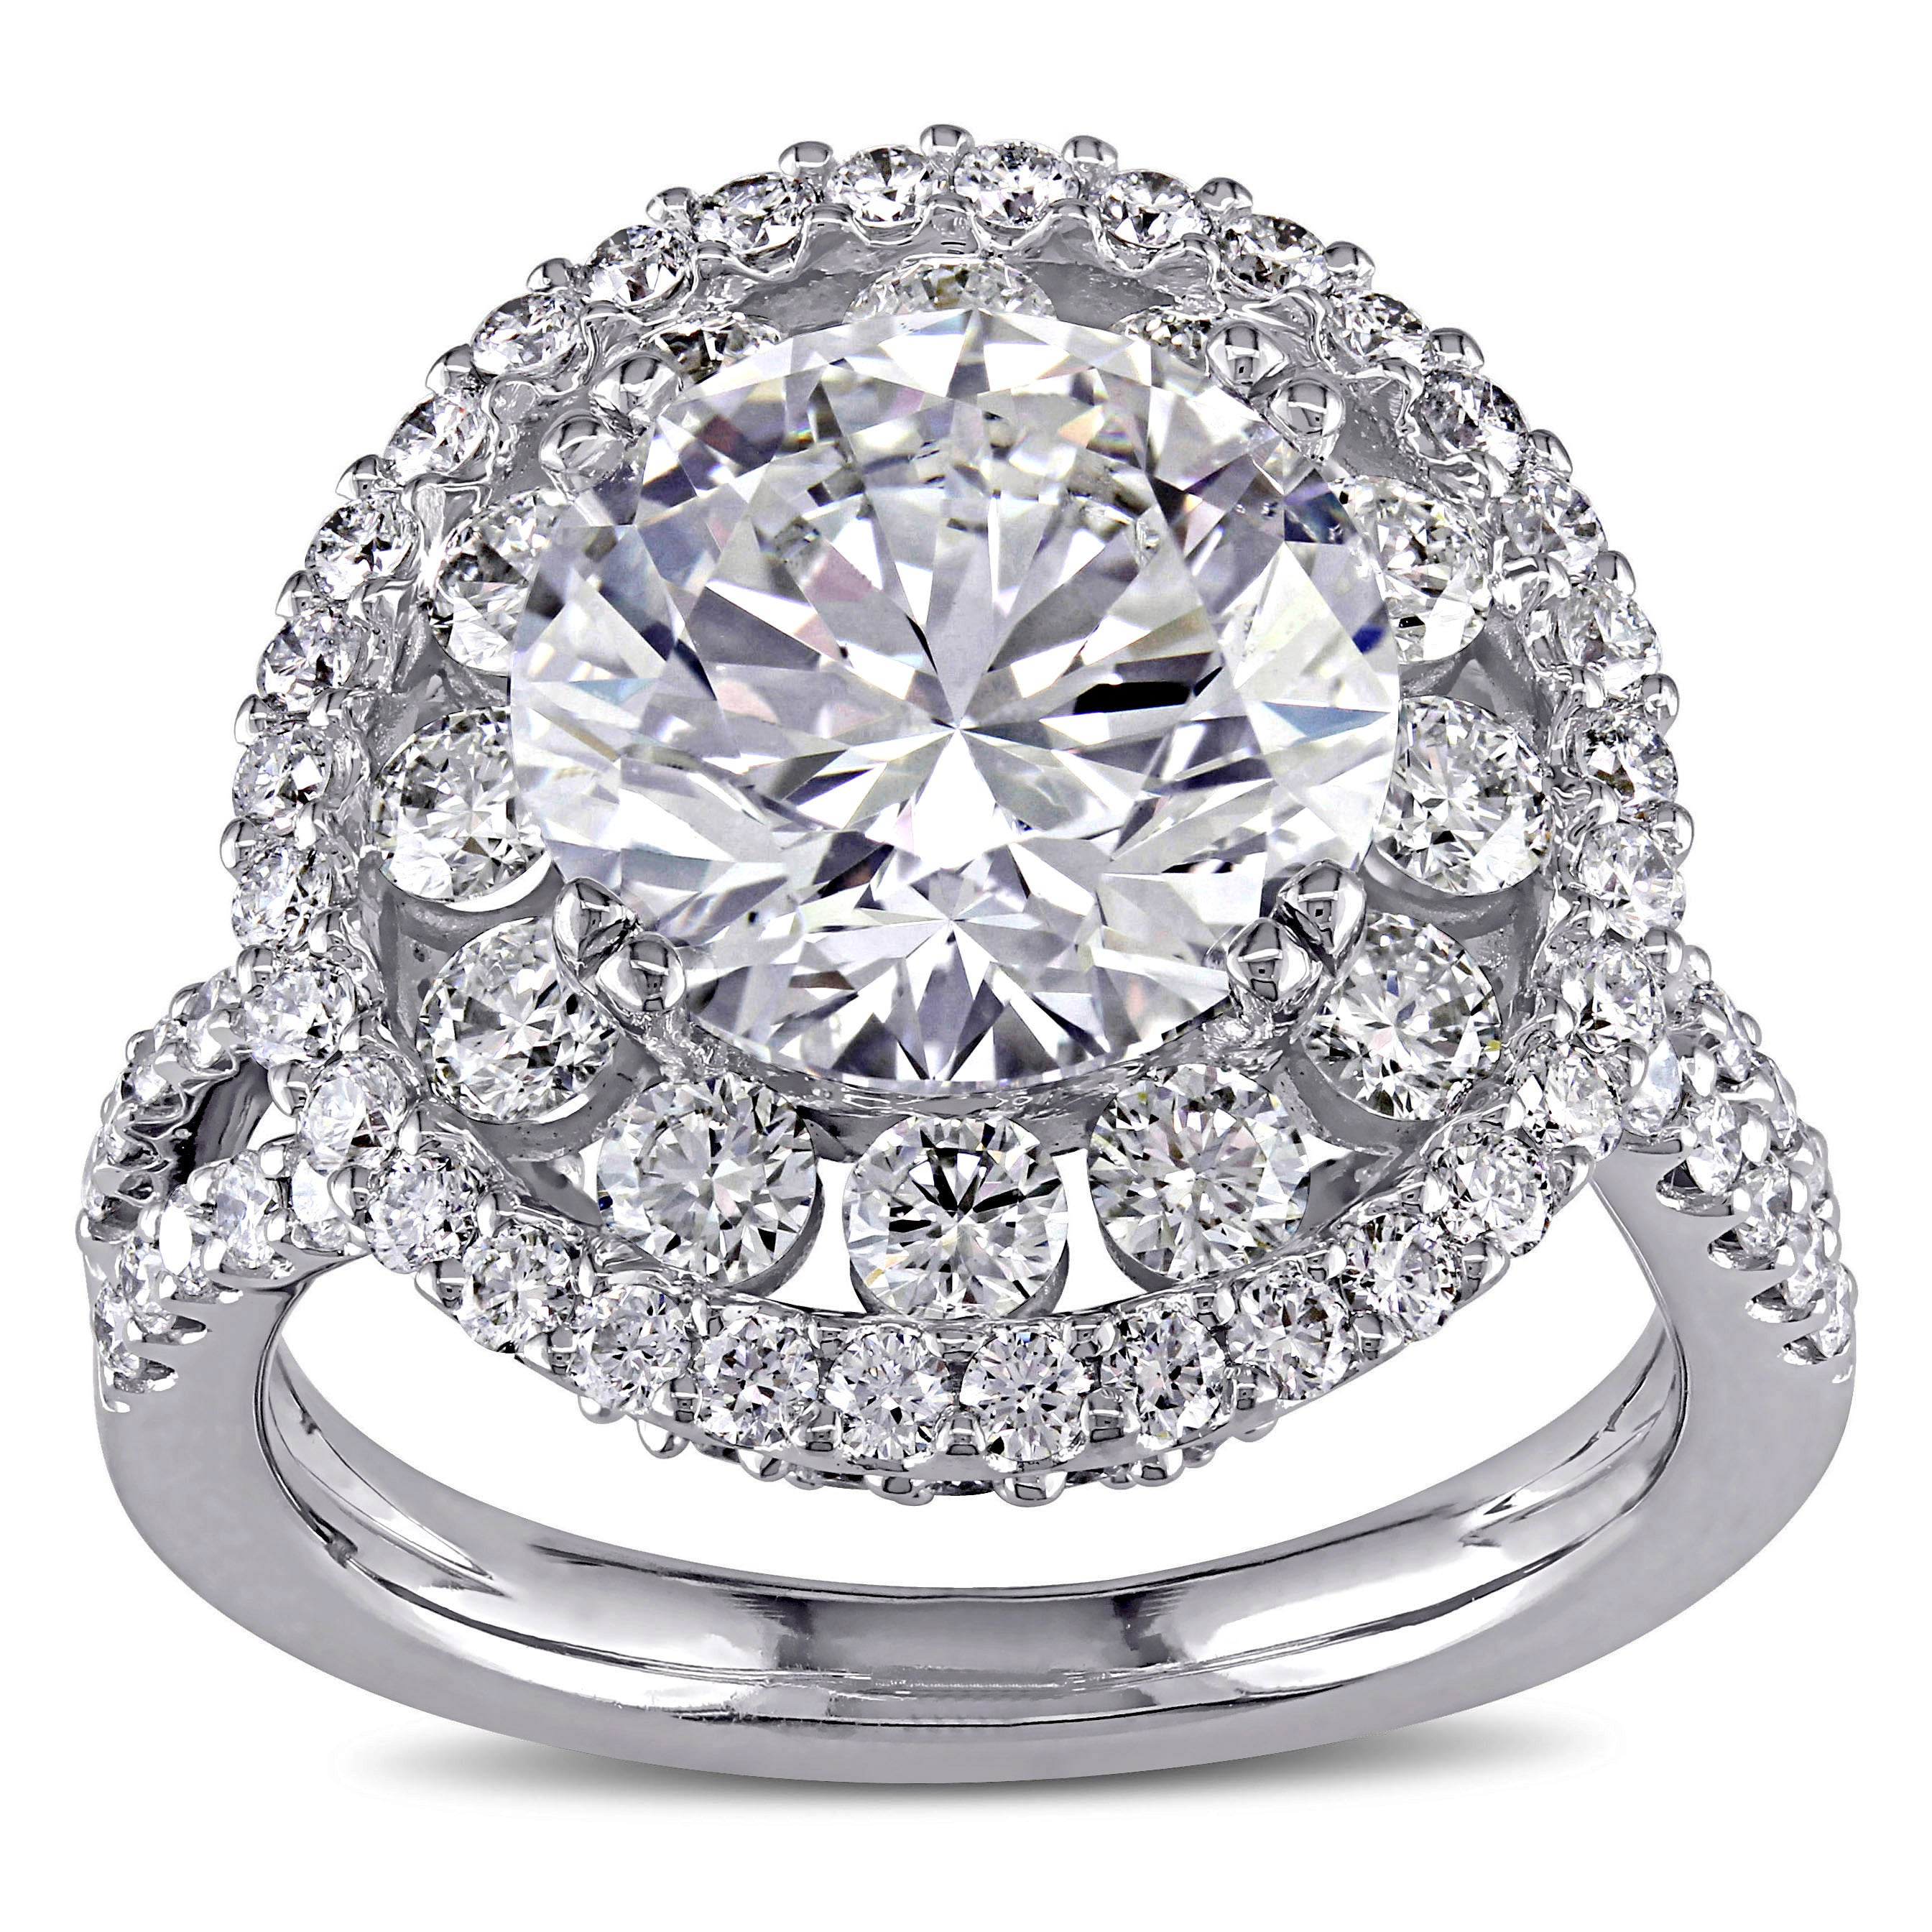 ring miltons engagement rings second platinum diamond gia jewellers certified image jewellery hand